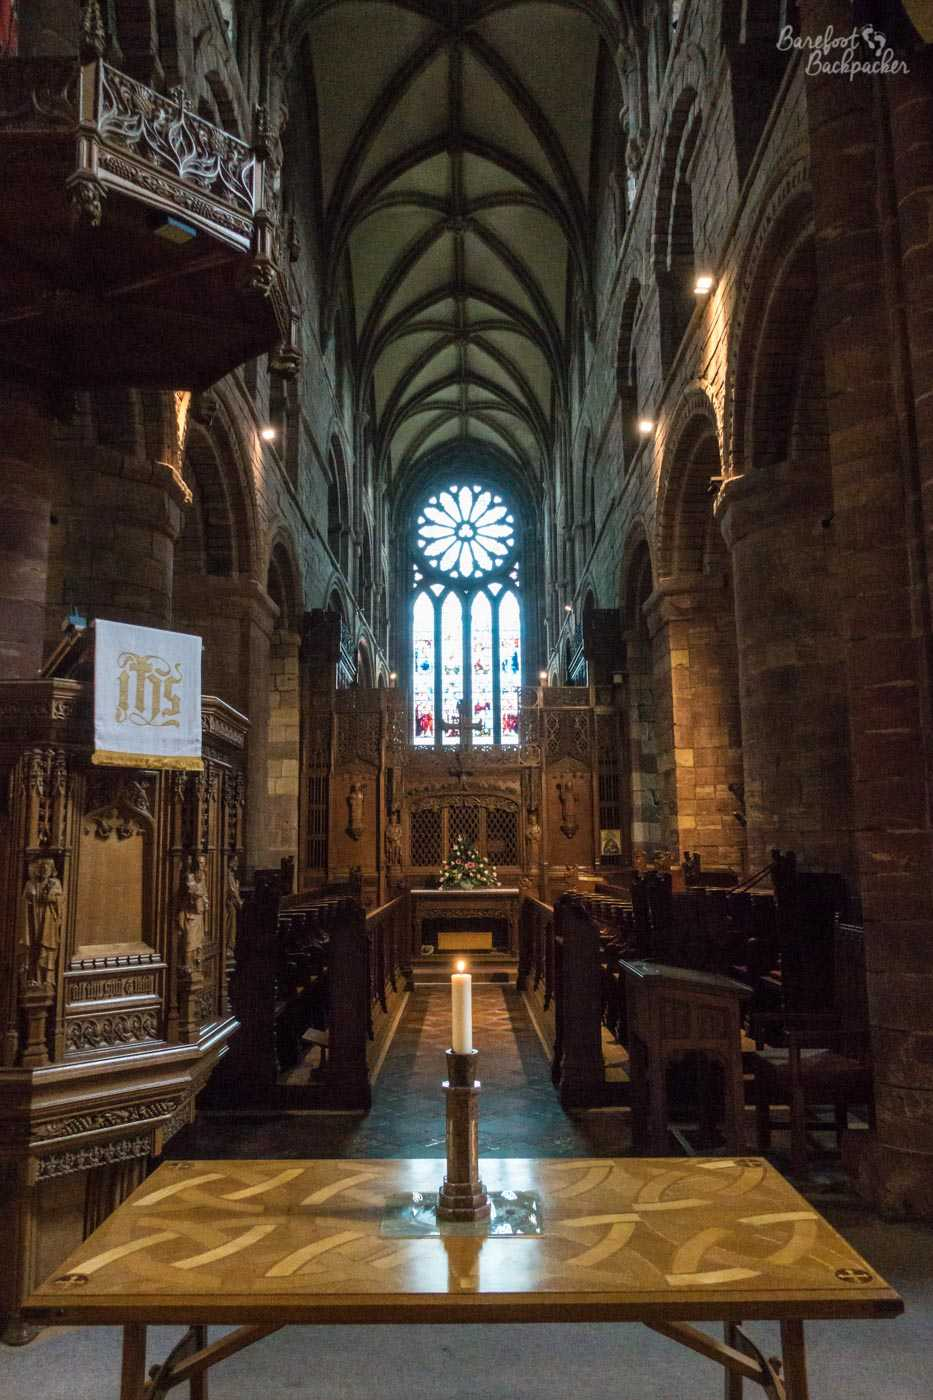 The inside of Kirkwall Cathedral looking along the main aisle towards the altar. Columns topped with arches line either side, and presumably there are seats for the choir etc below them. In the foreground is a table with a lit candle on it.